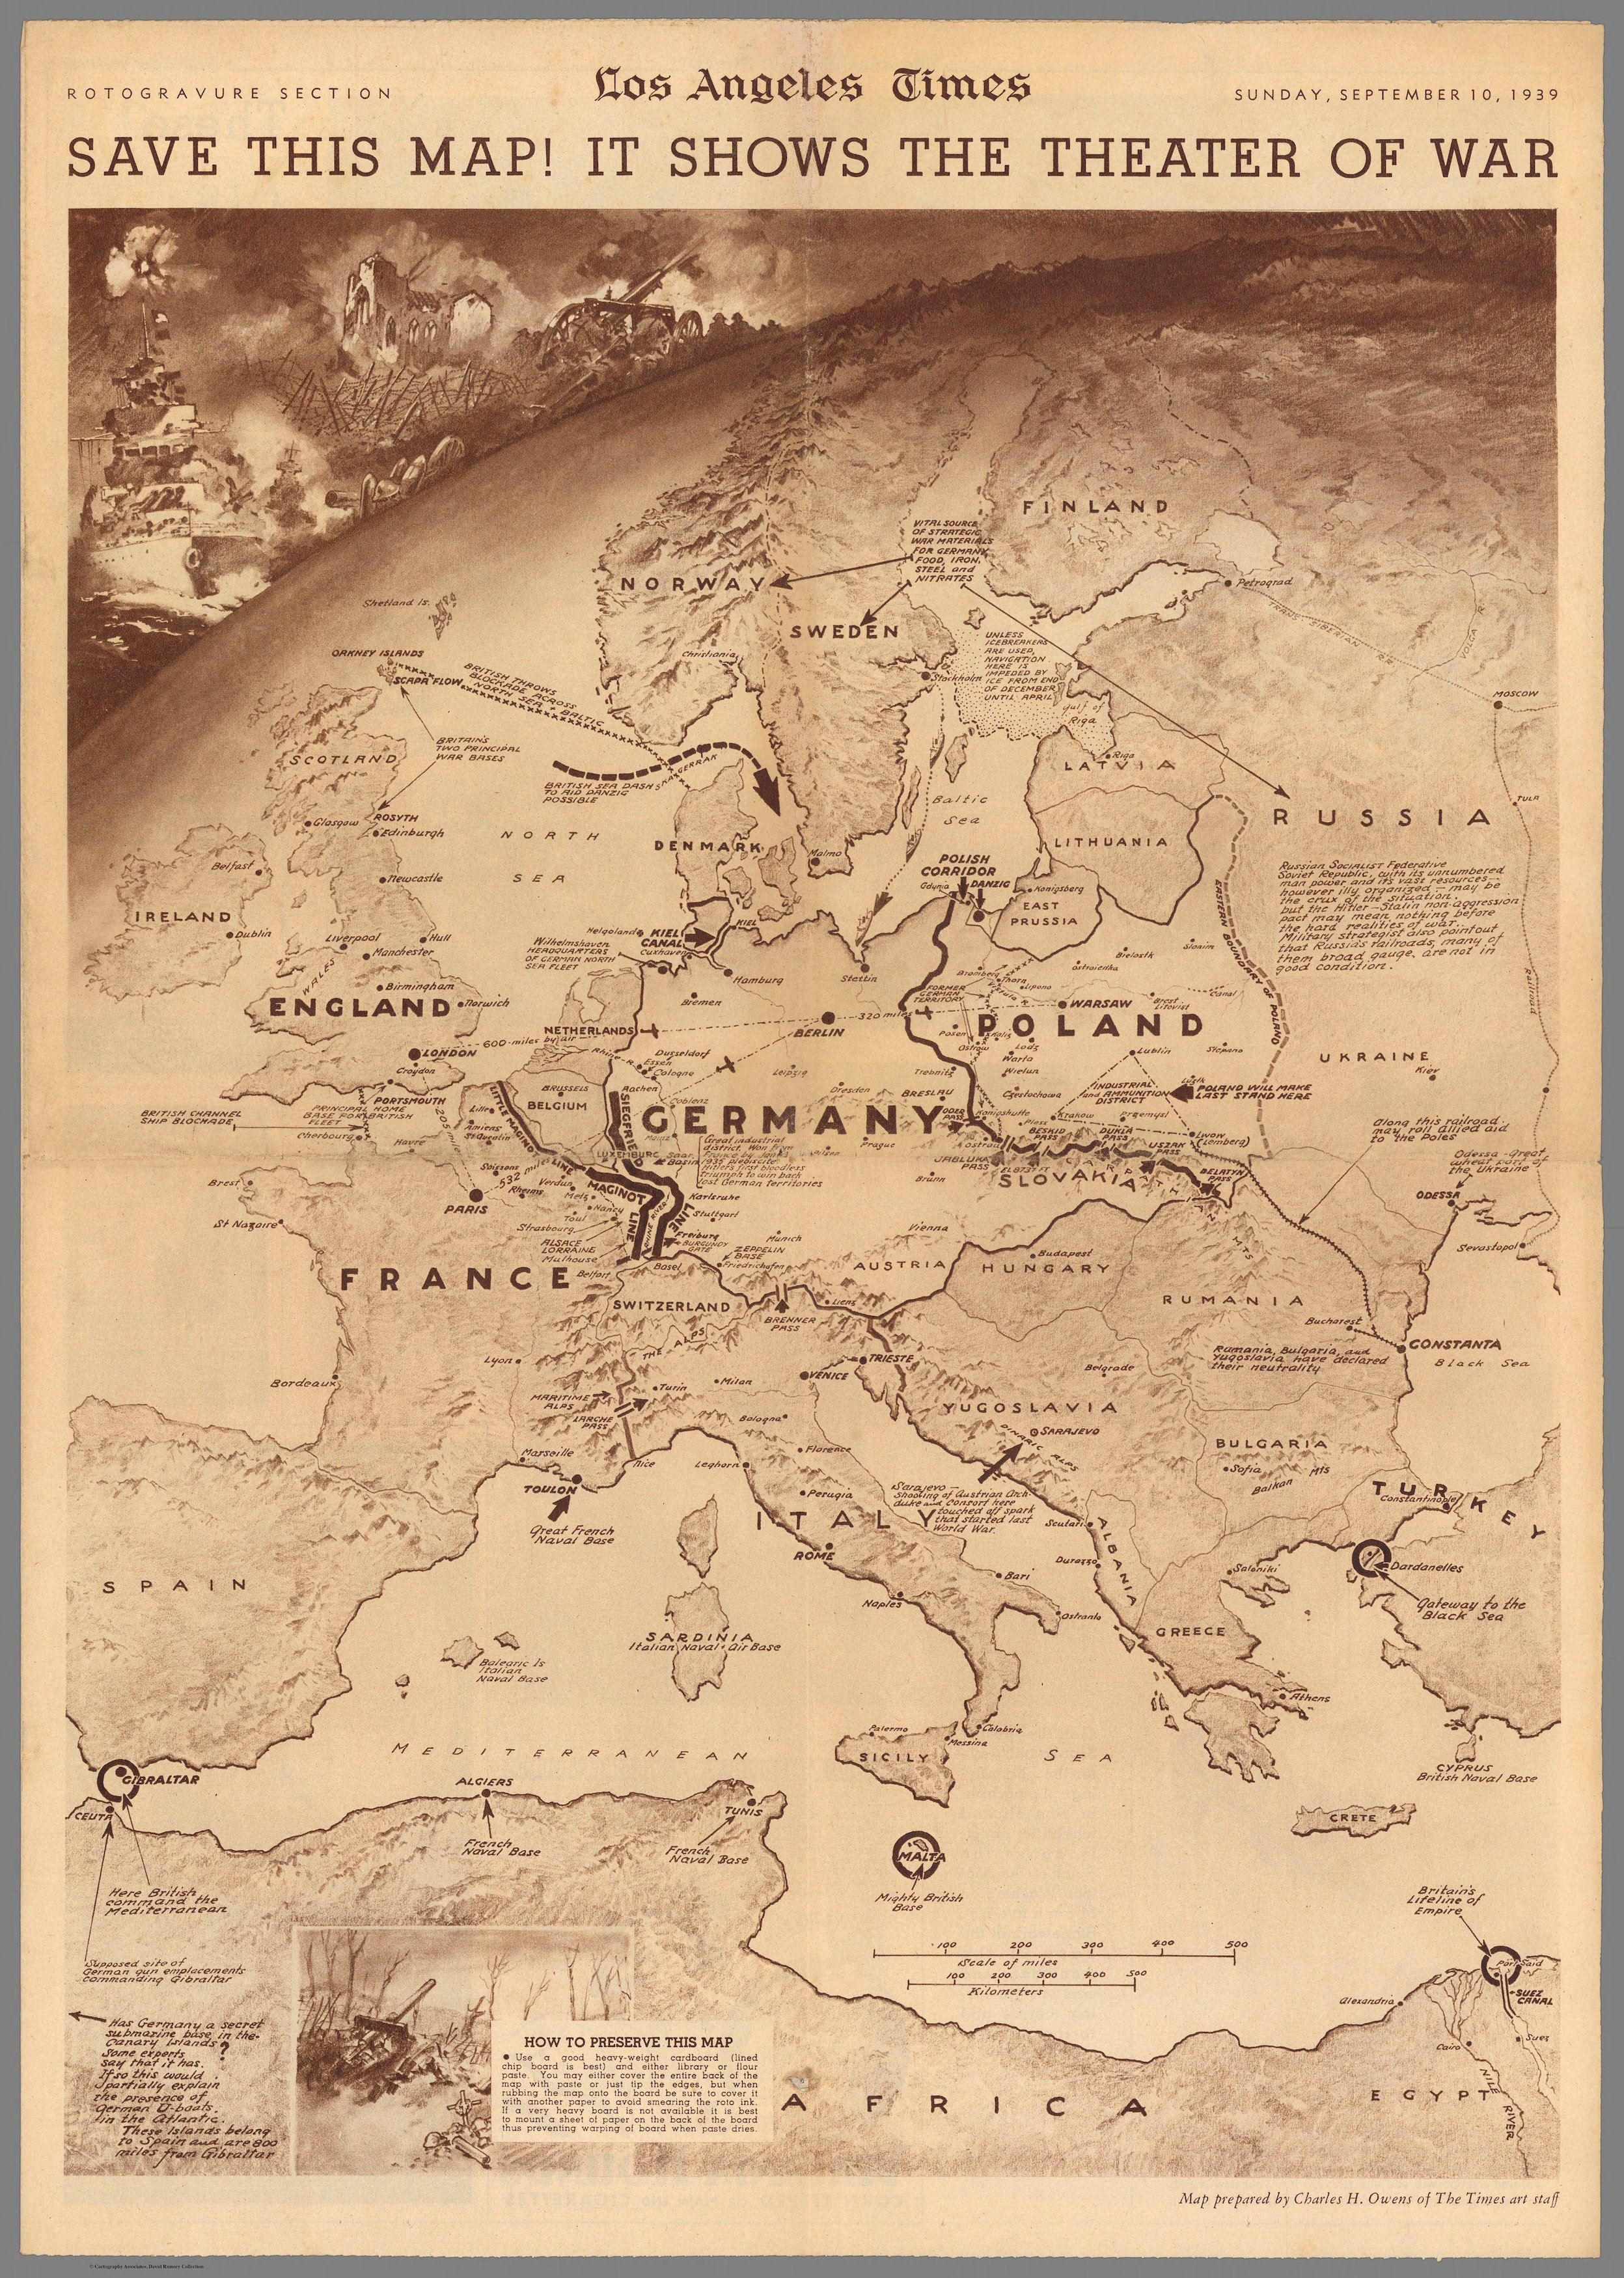 A Annotated Map Of Nazi Aggression And Emerging World